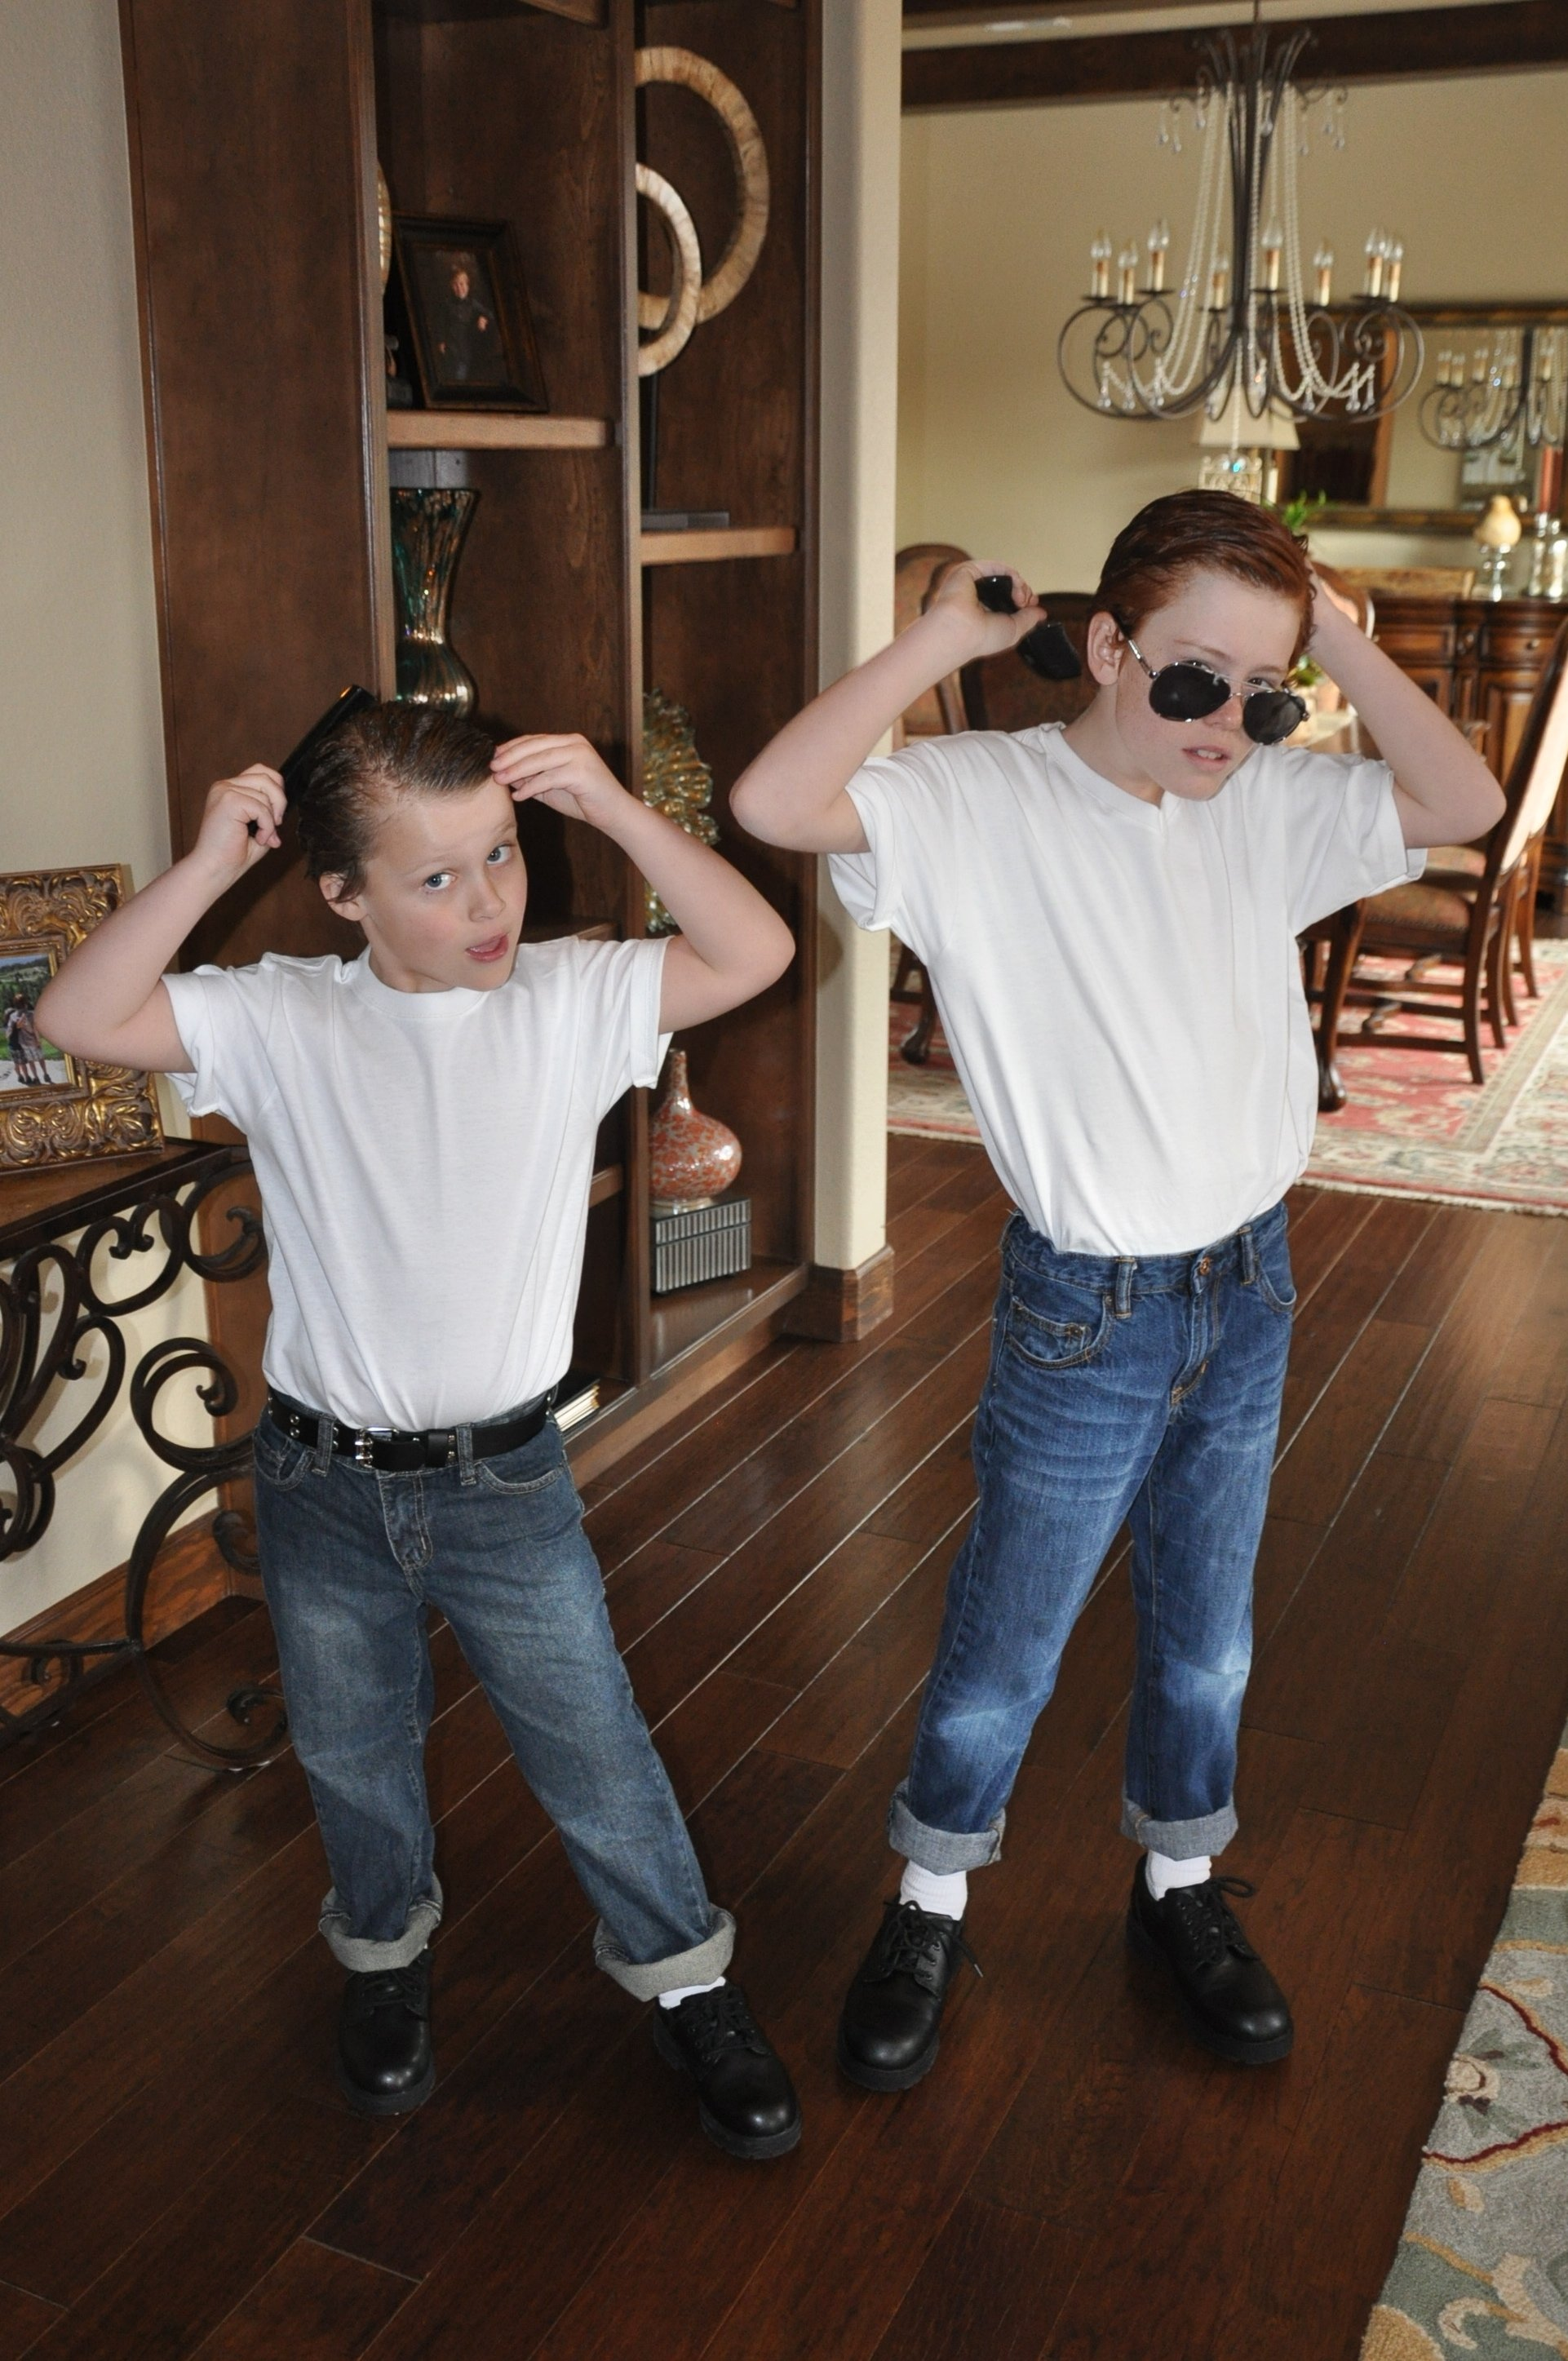 10 Elegant Decade Day Ideas For Boys simple sock hop attire its all in the attitude custom costumes